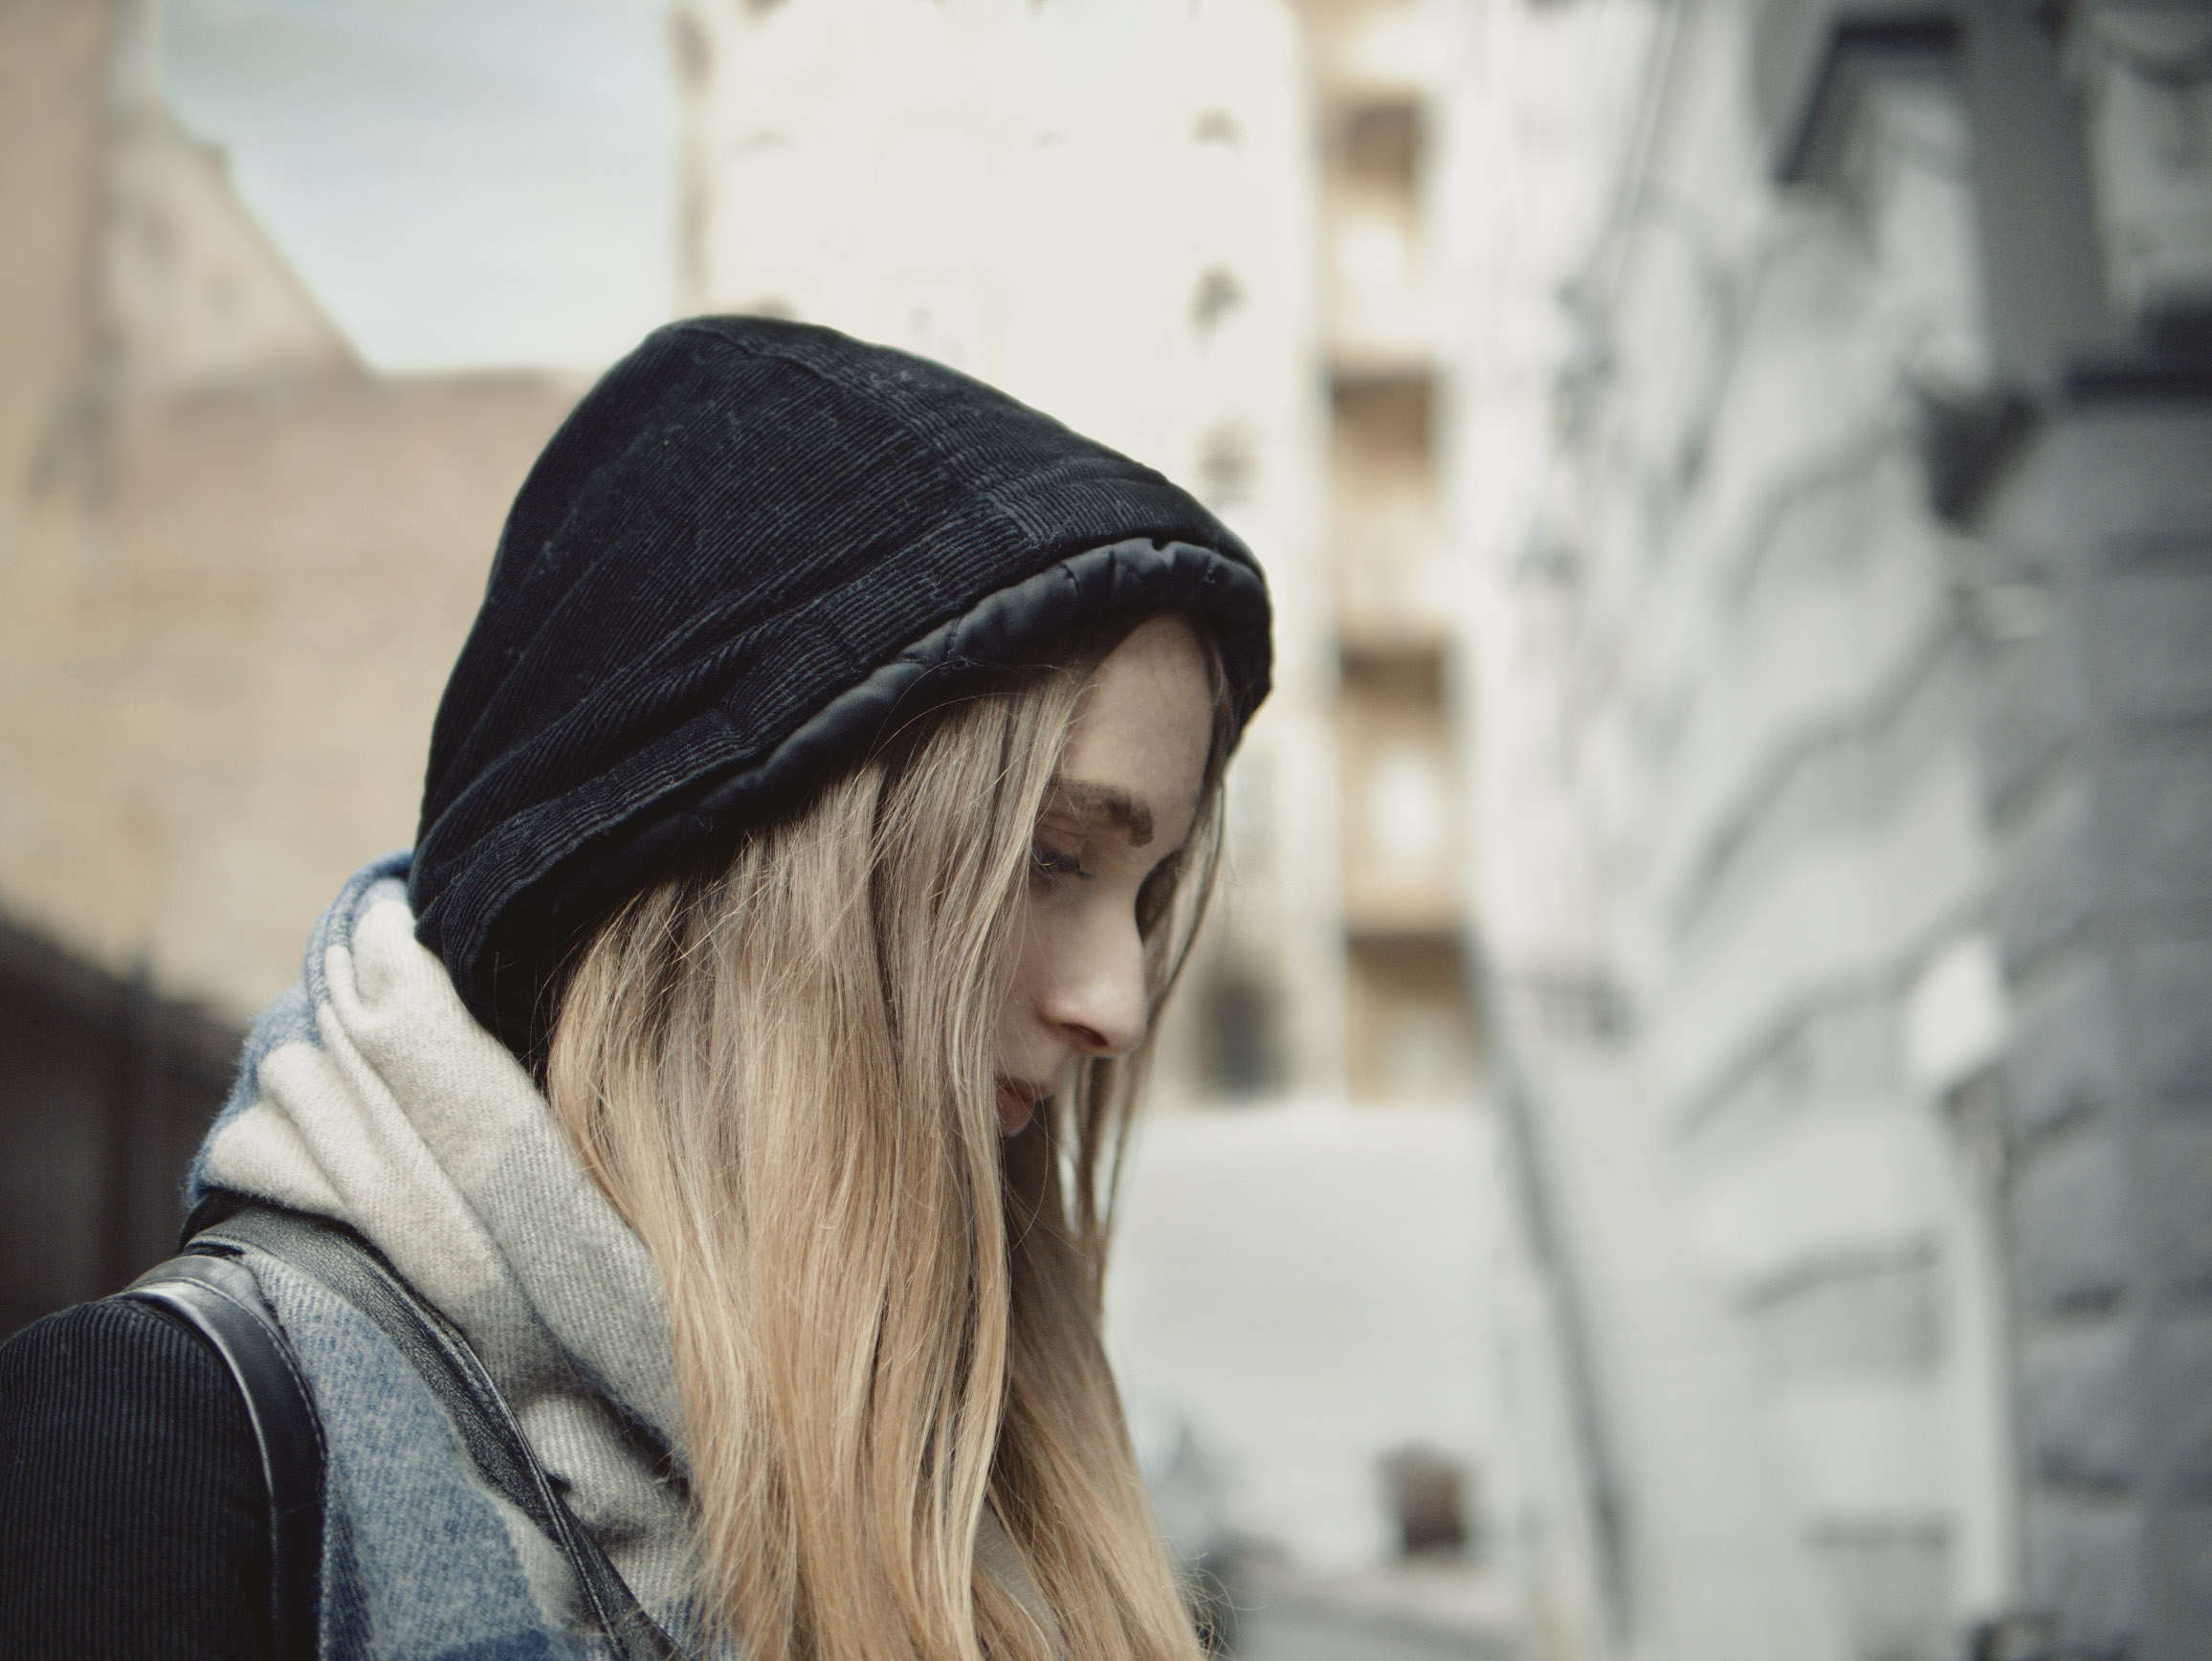 Free download high resolution image - free image free photo free stock image public domain picture -portrait of a beautiful sad girl in a hat